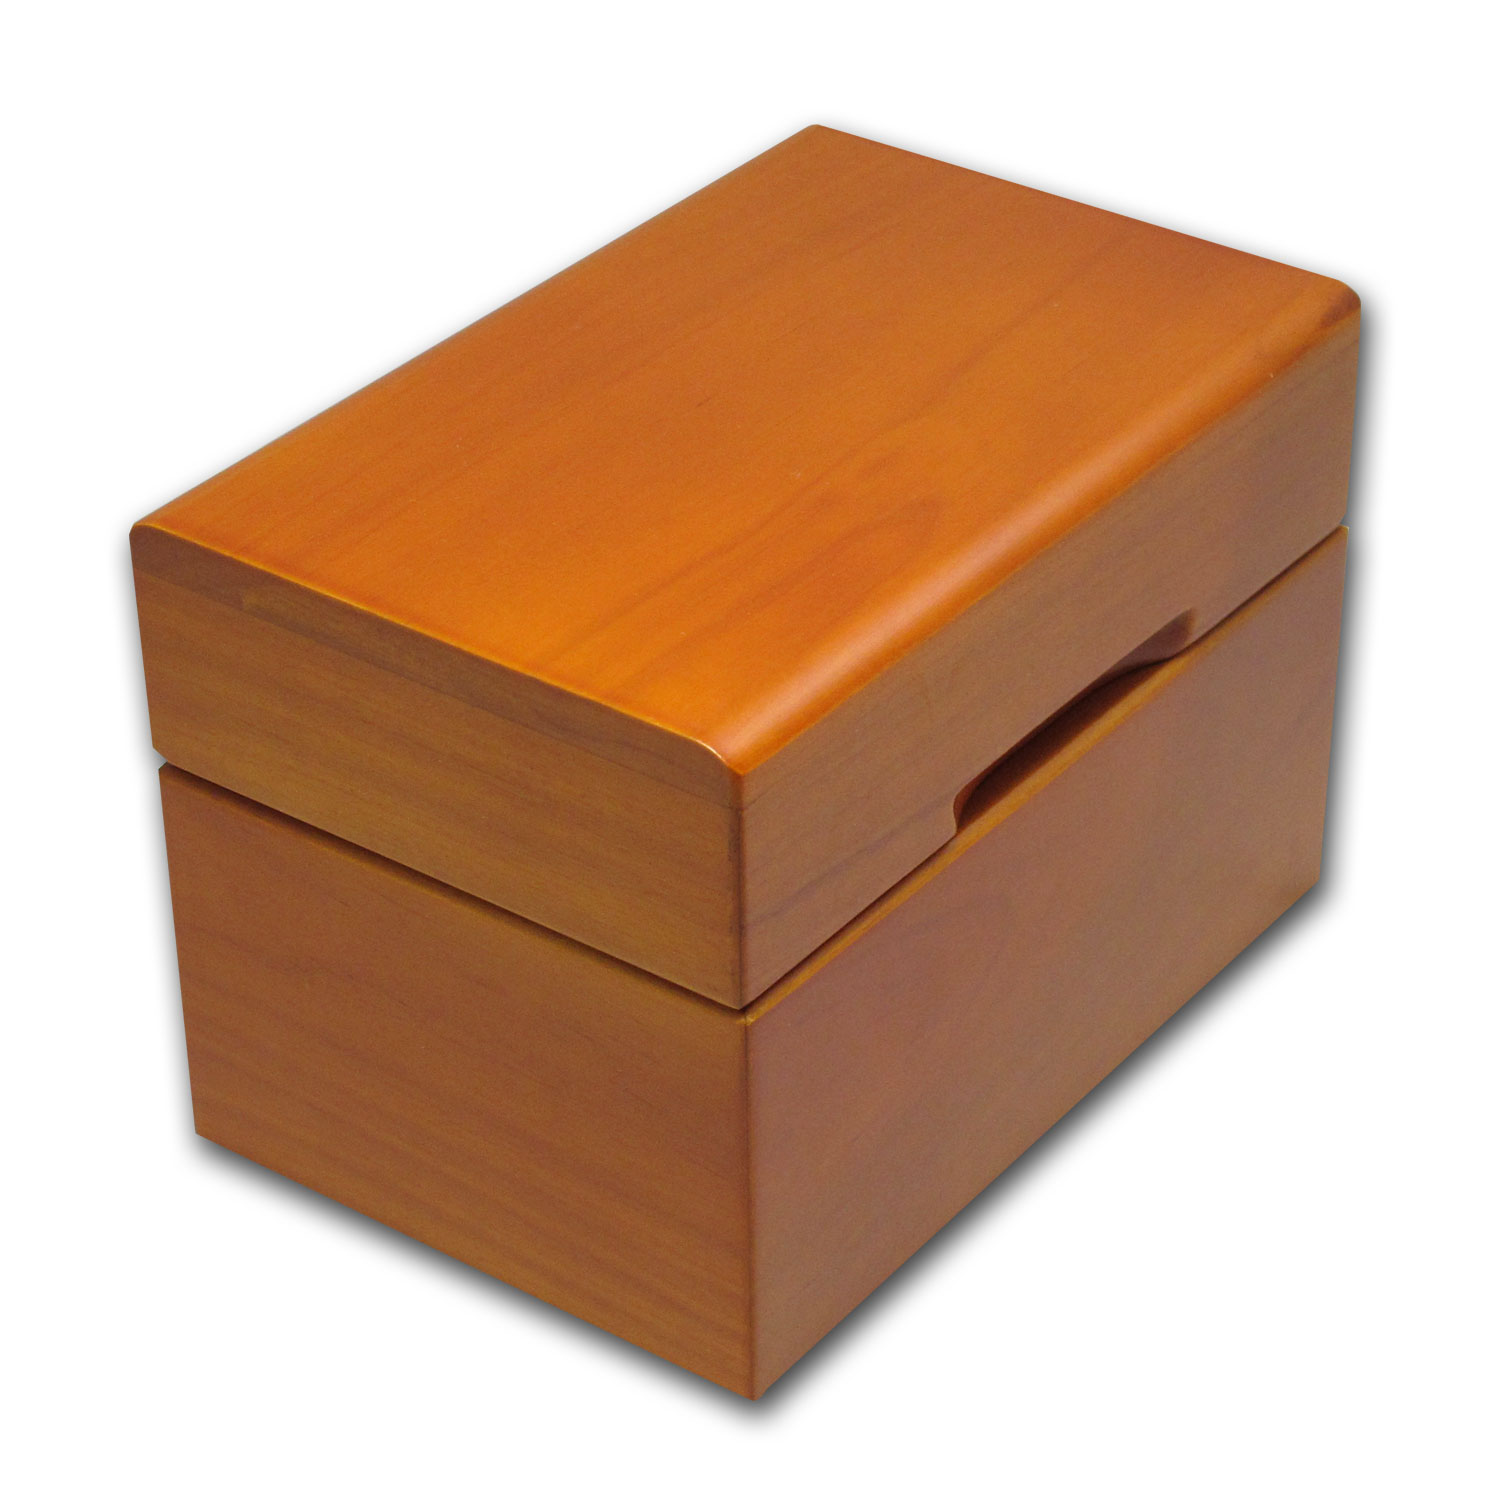 Hardwood Slab Storage Box - Ten Slab